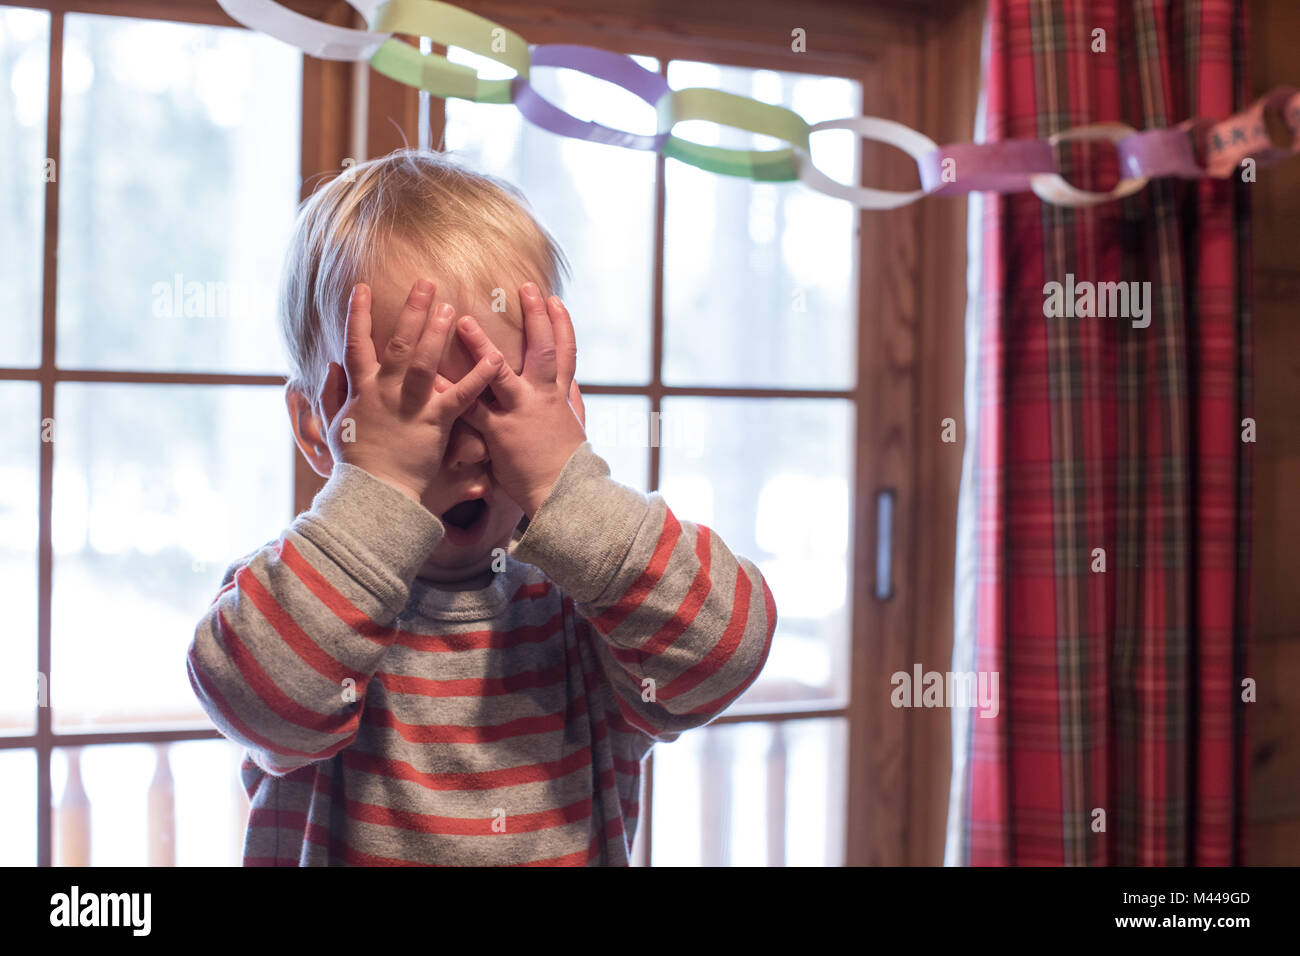 Boy playing hide and seek - Stock Image